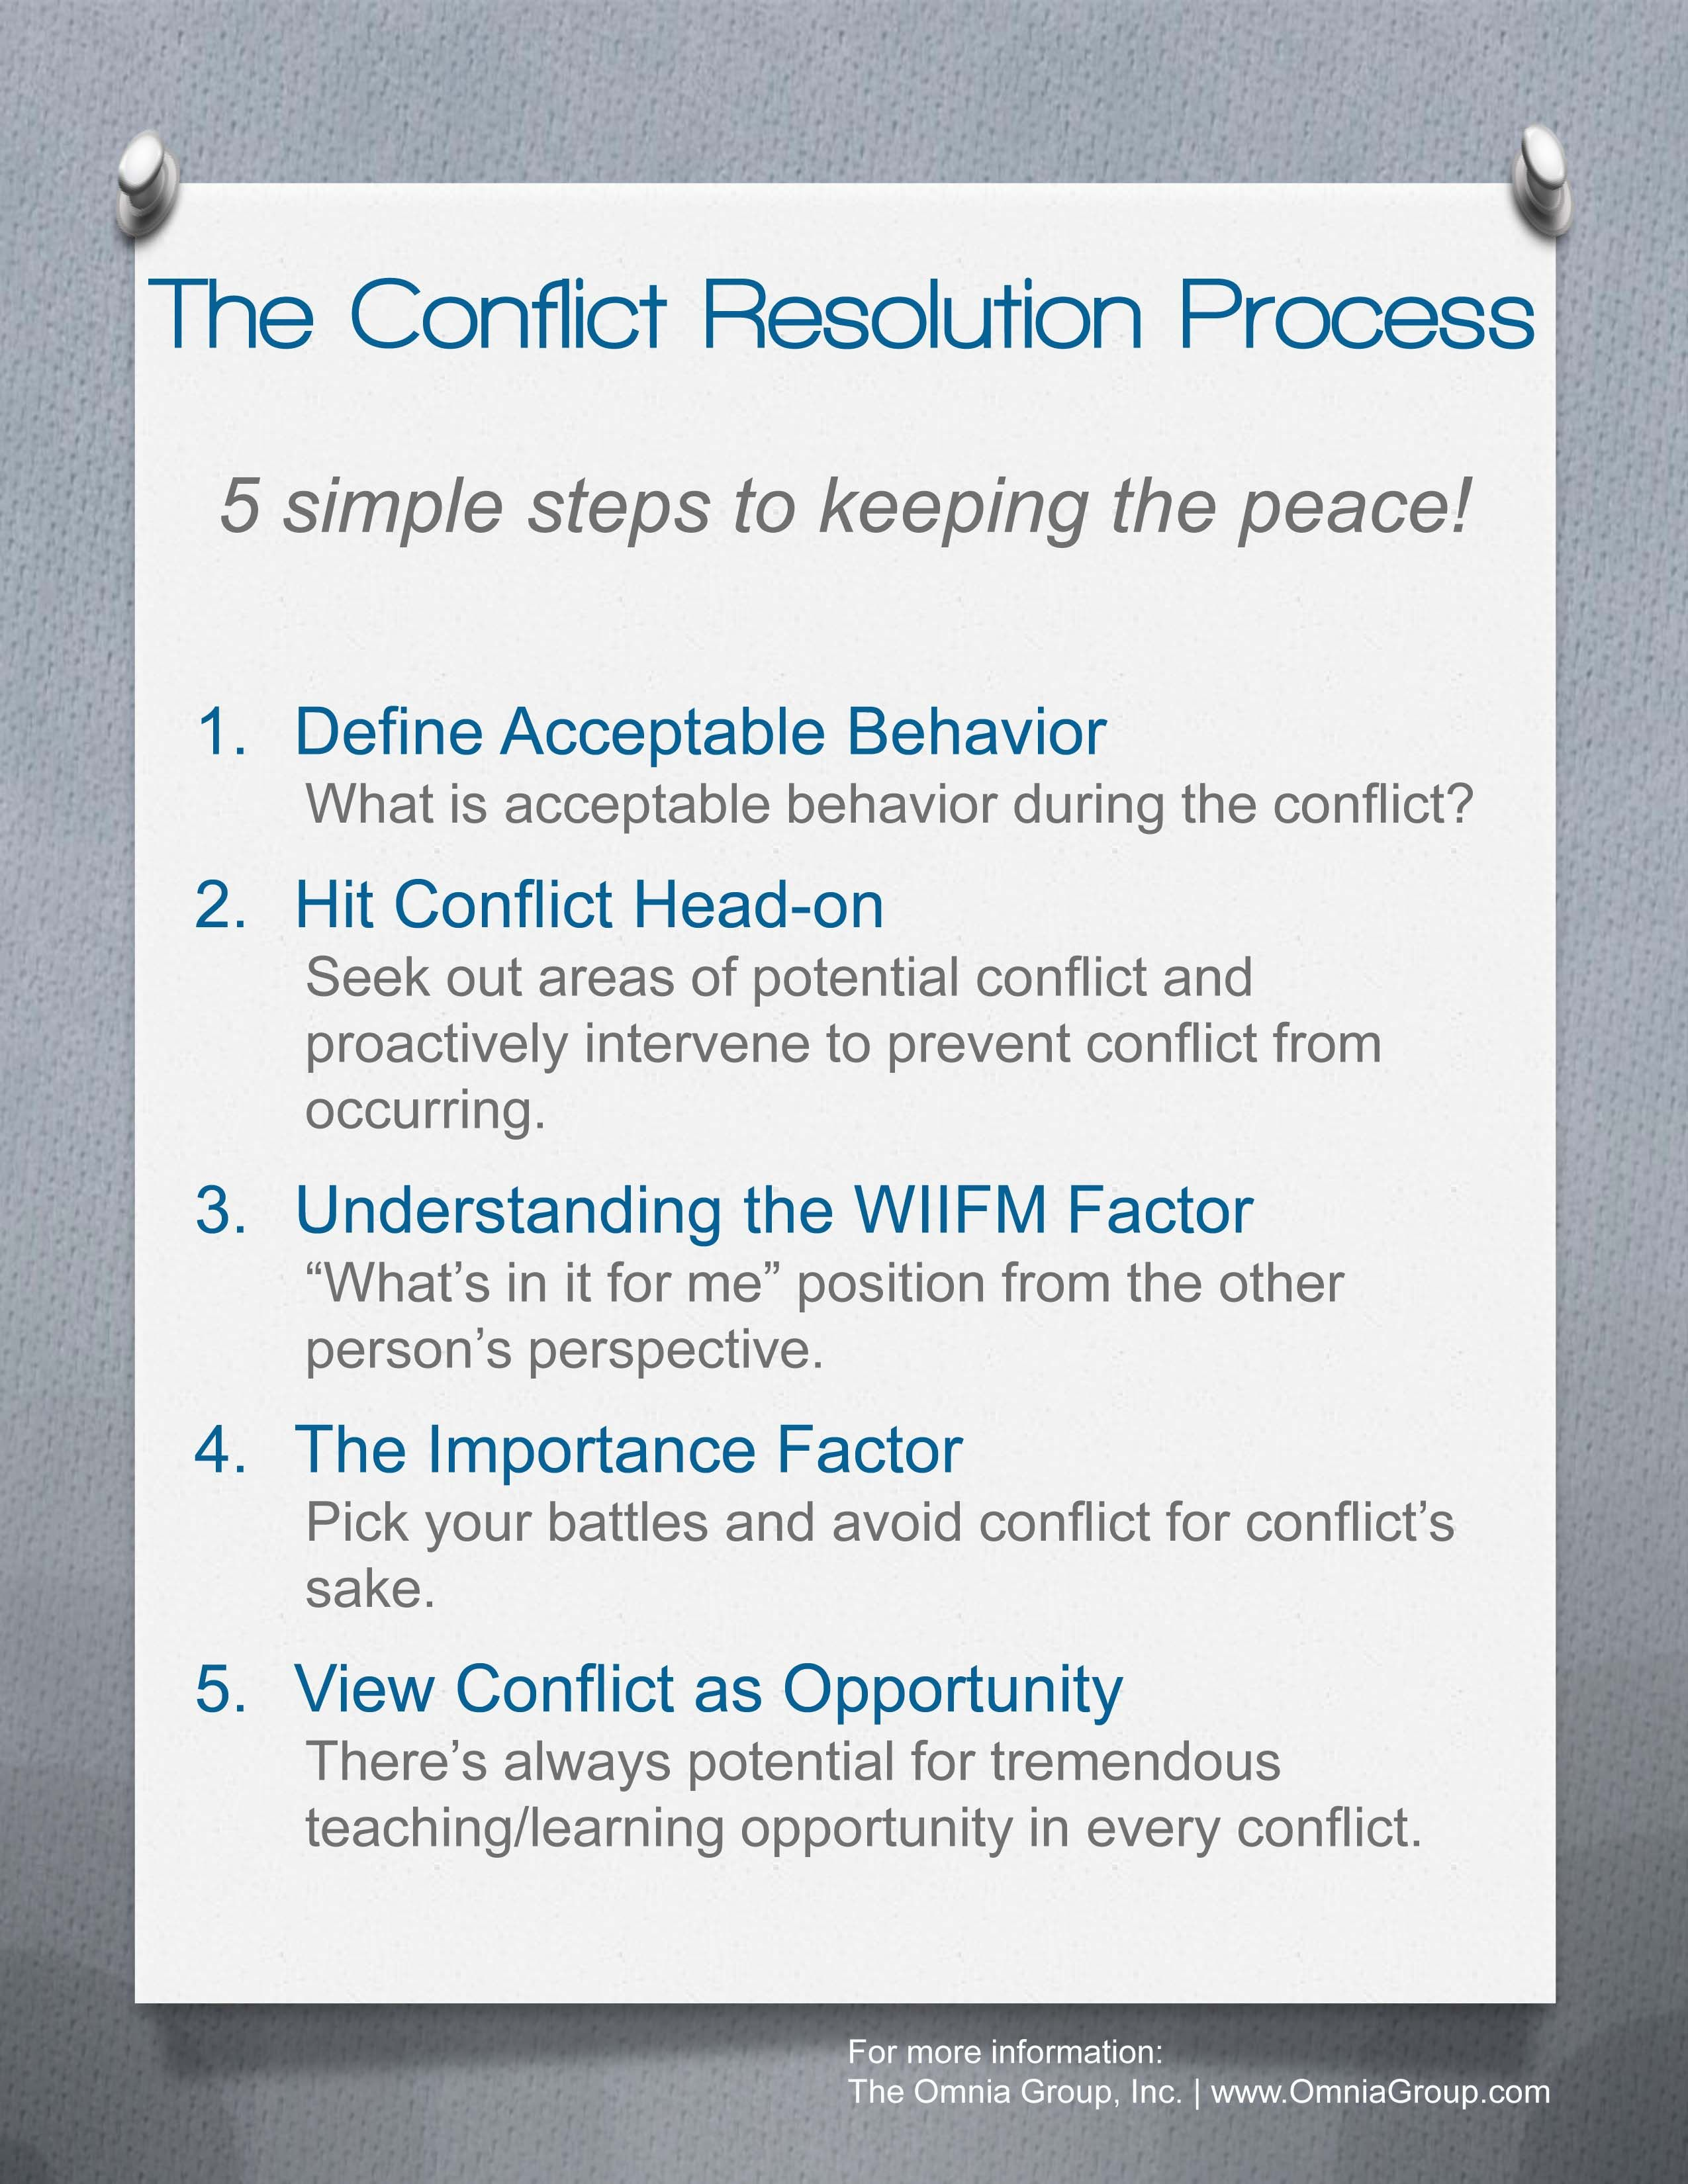 The Conflict Resolution Process In 5 Steps